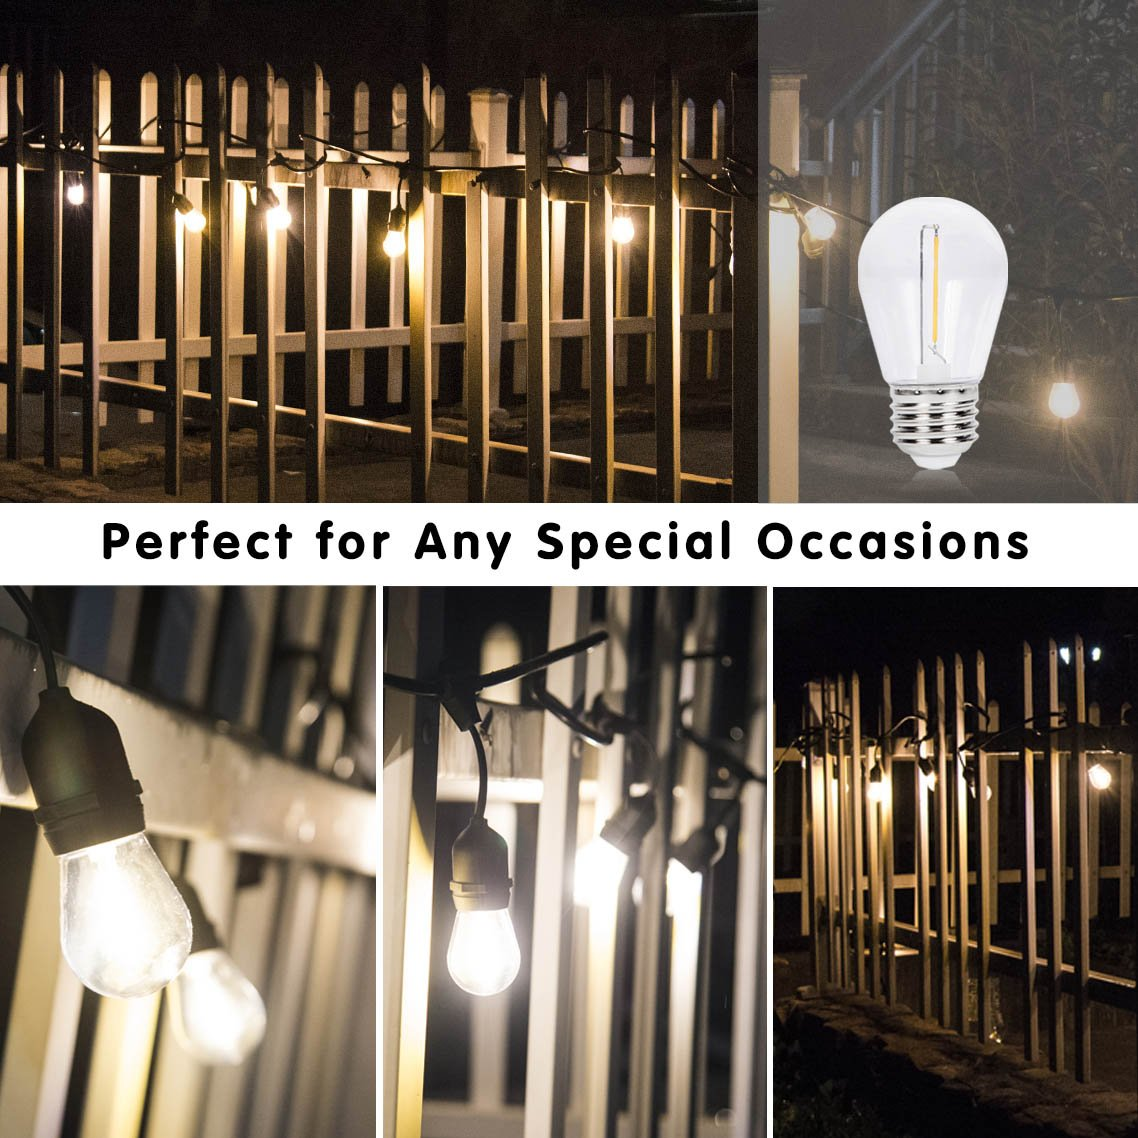 1W Non-Dimmable Bulbs Without String Strands 70 Lumens PC Cover EFFOE Waterproof S14 LED Bulbs E26 Base UL Listed S14-1W-ND-Warm-16P 16 Pack 2700K Warm White Light